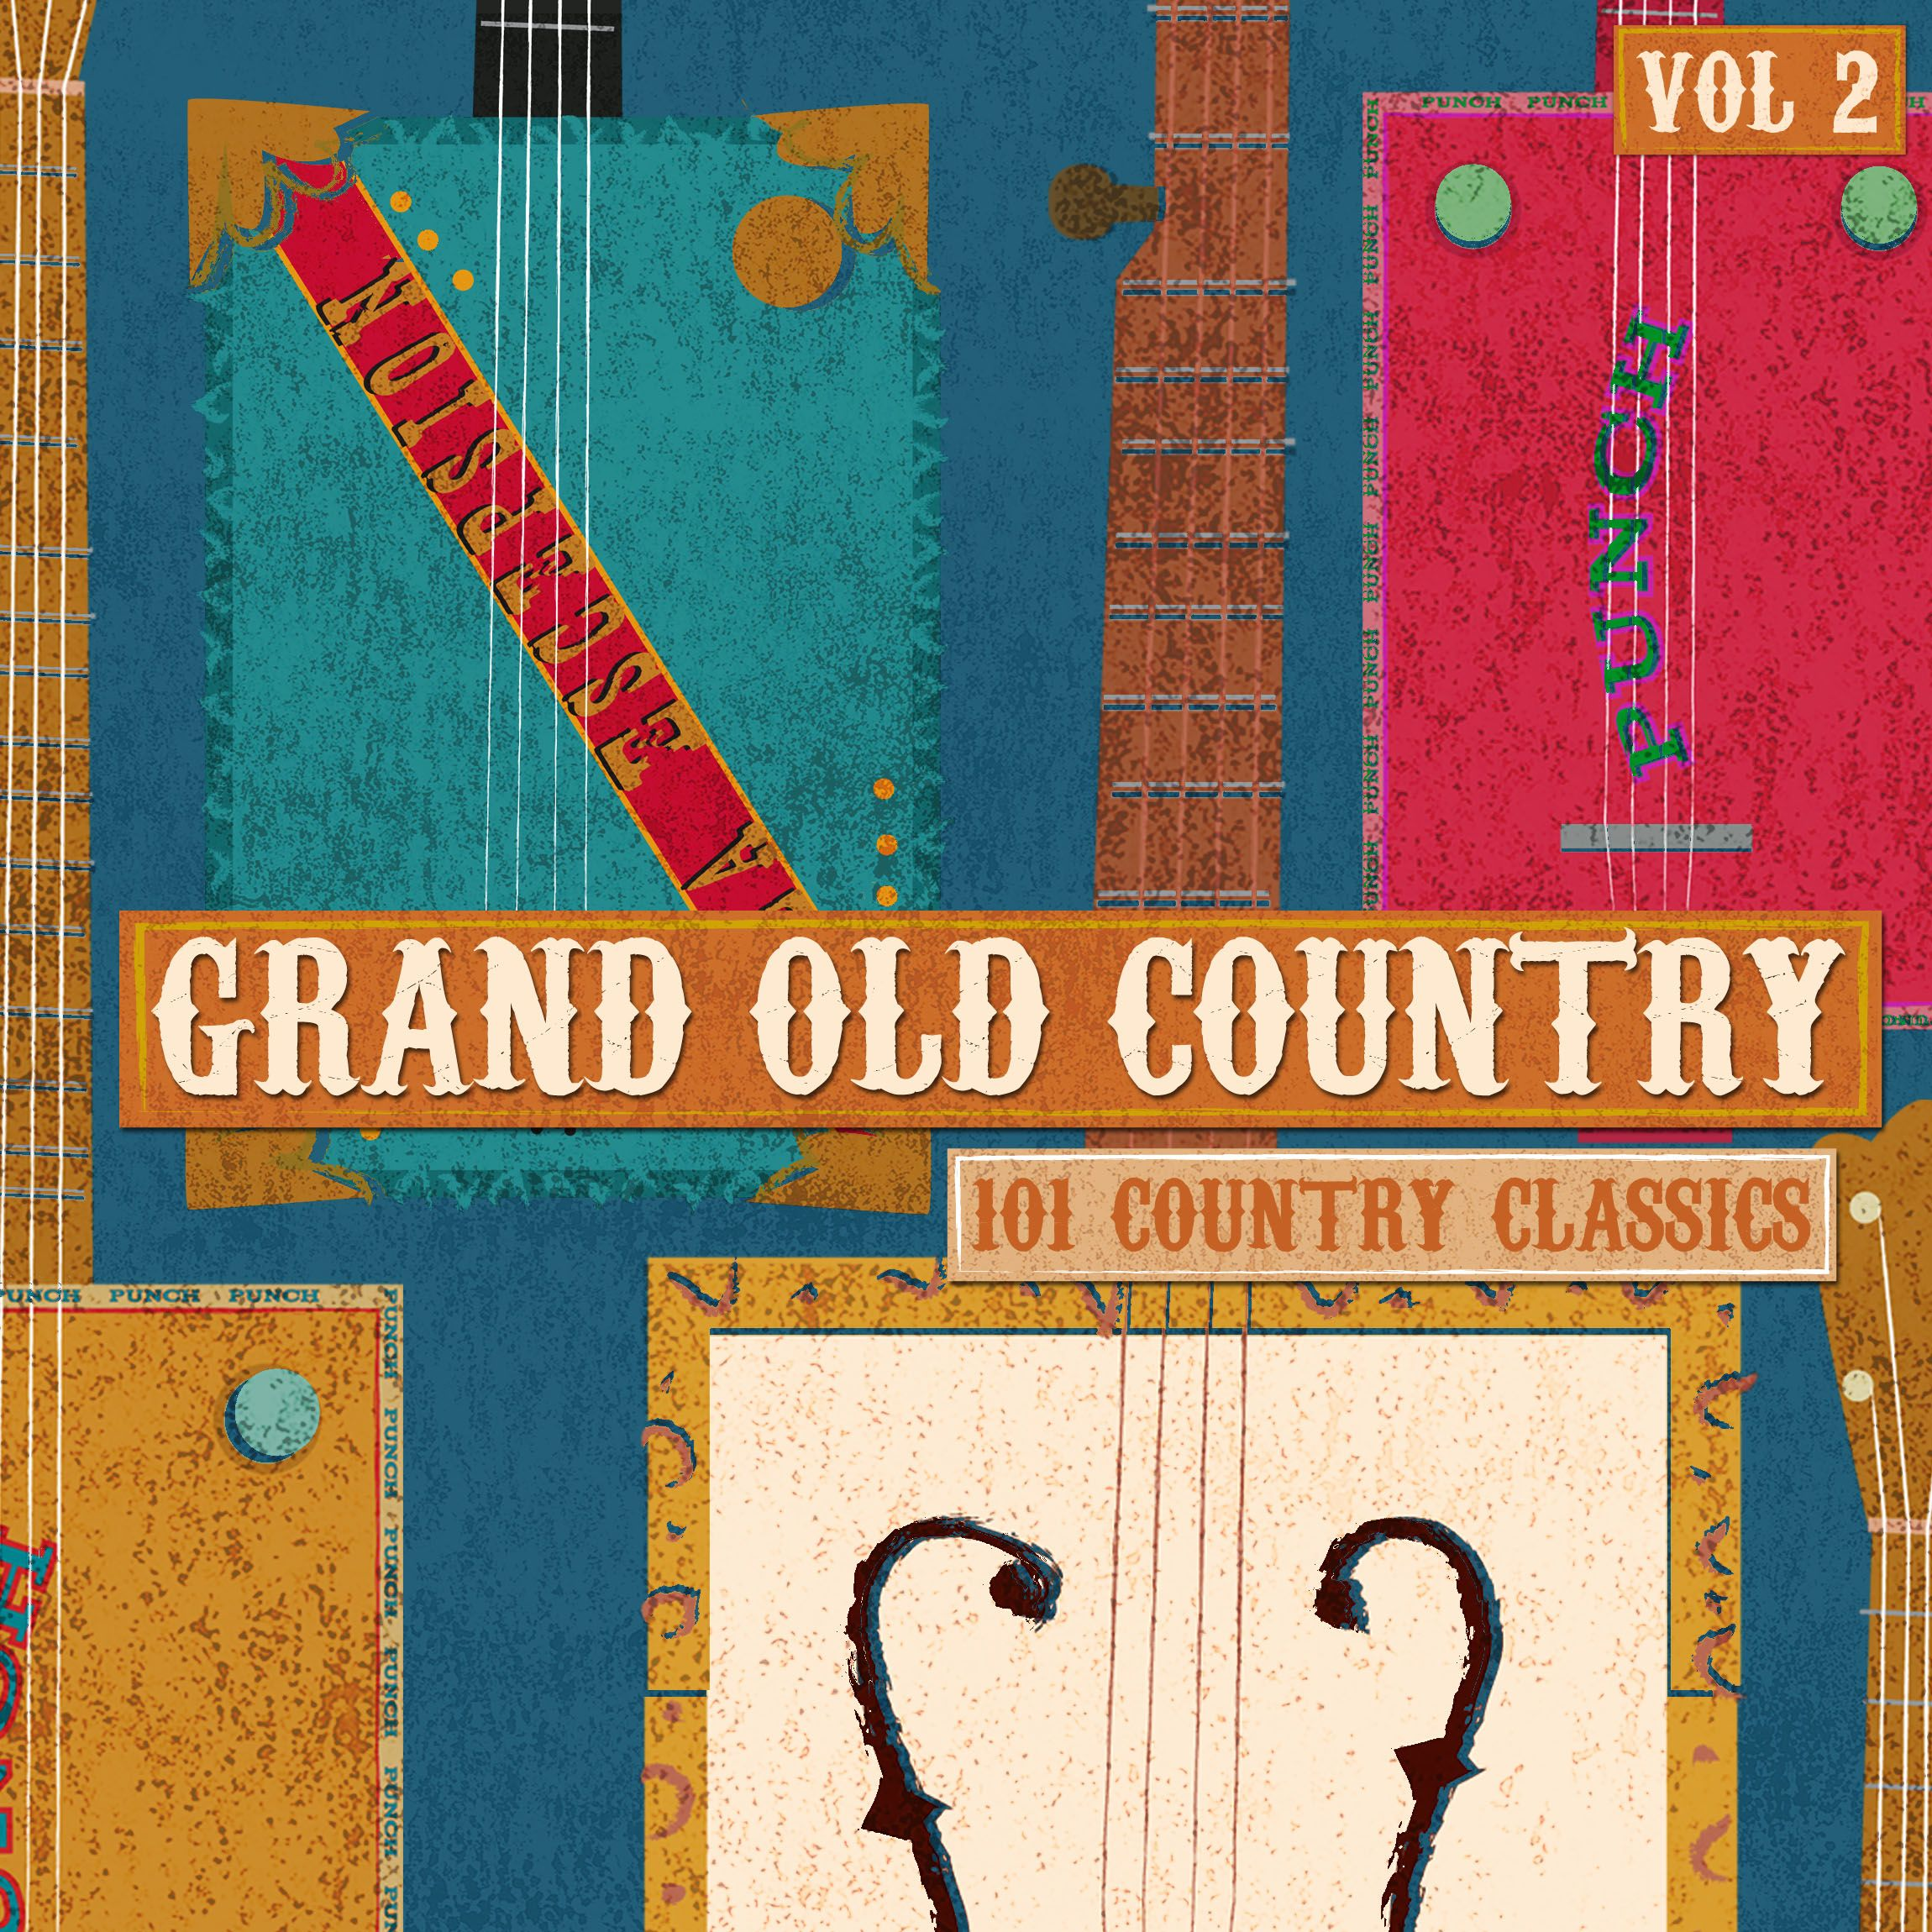 Grand Old Country\' on iTunes now: https://itunes.apple.com/gb/album ...